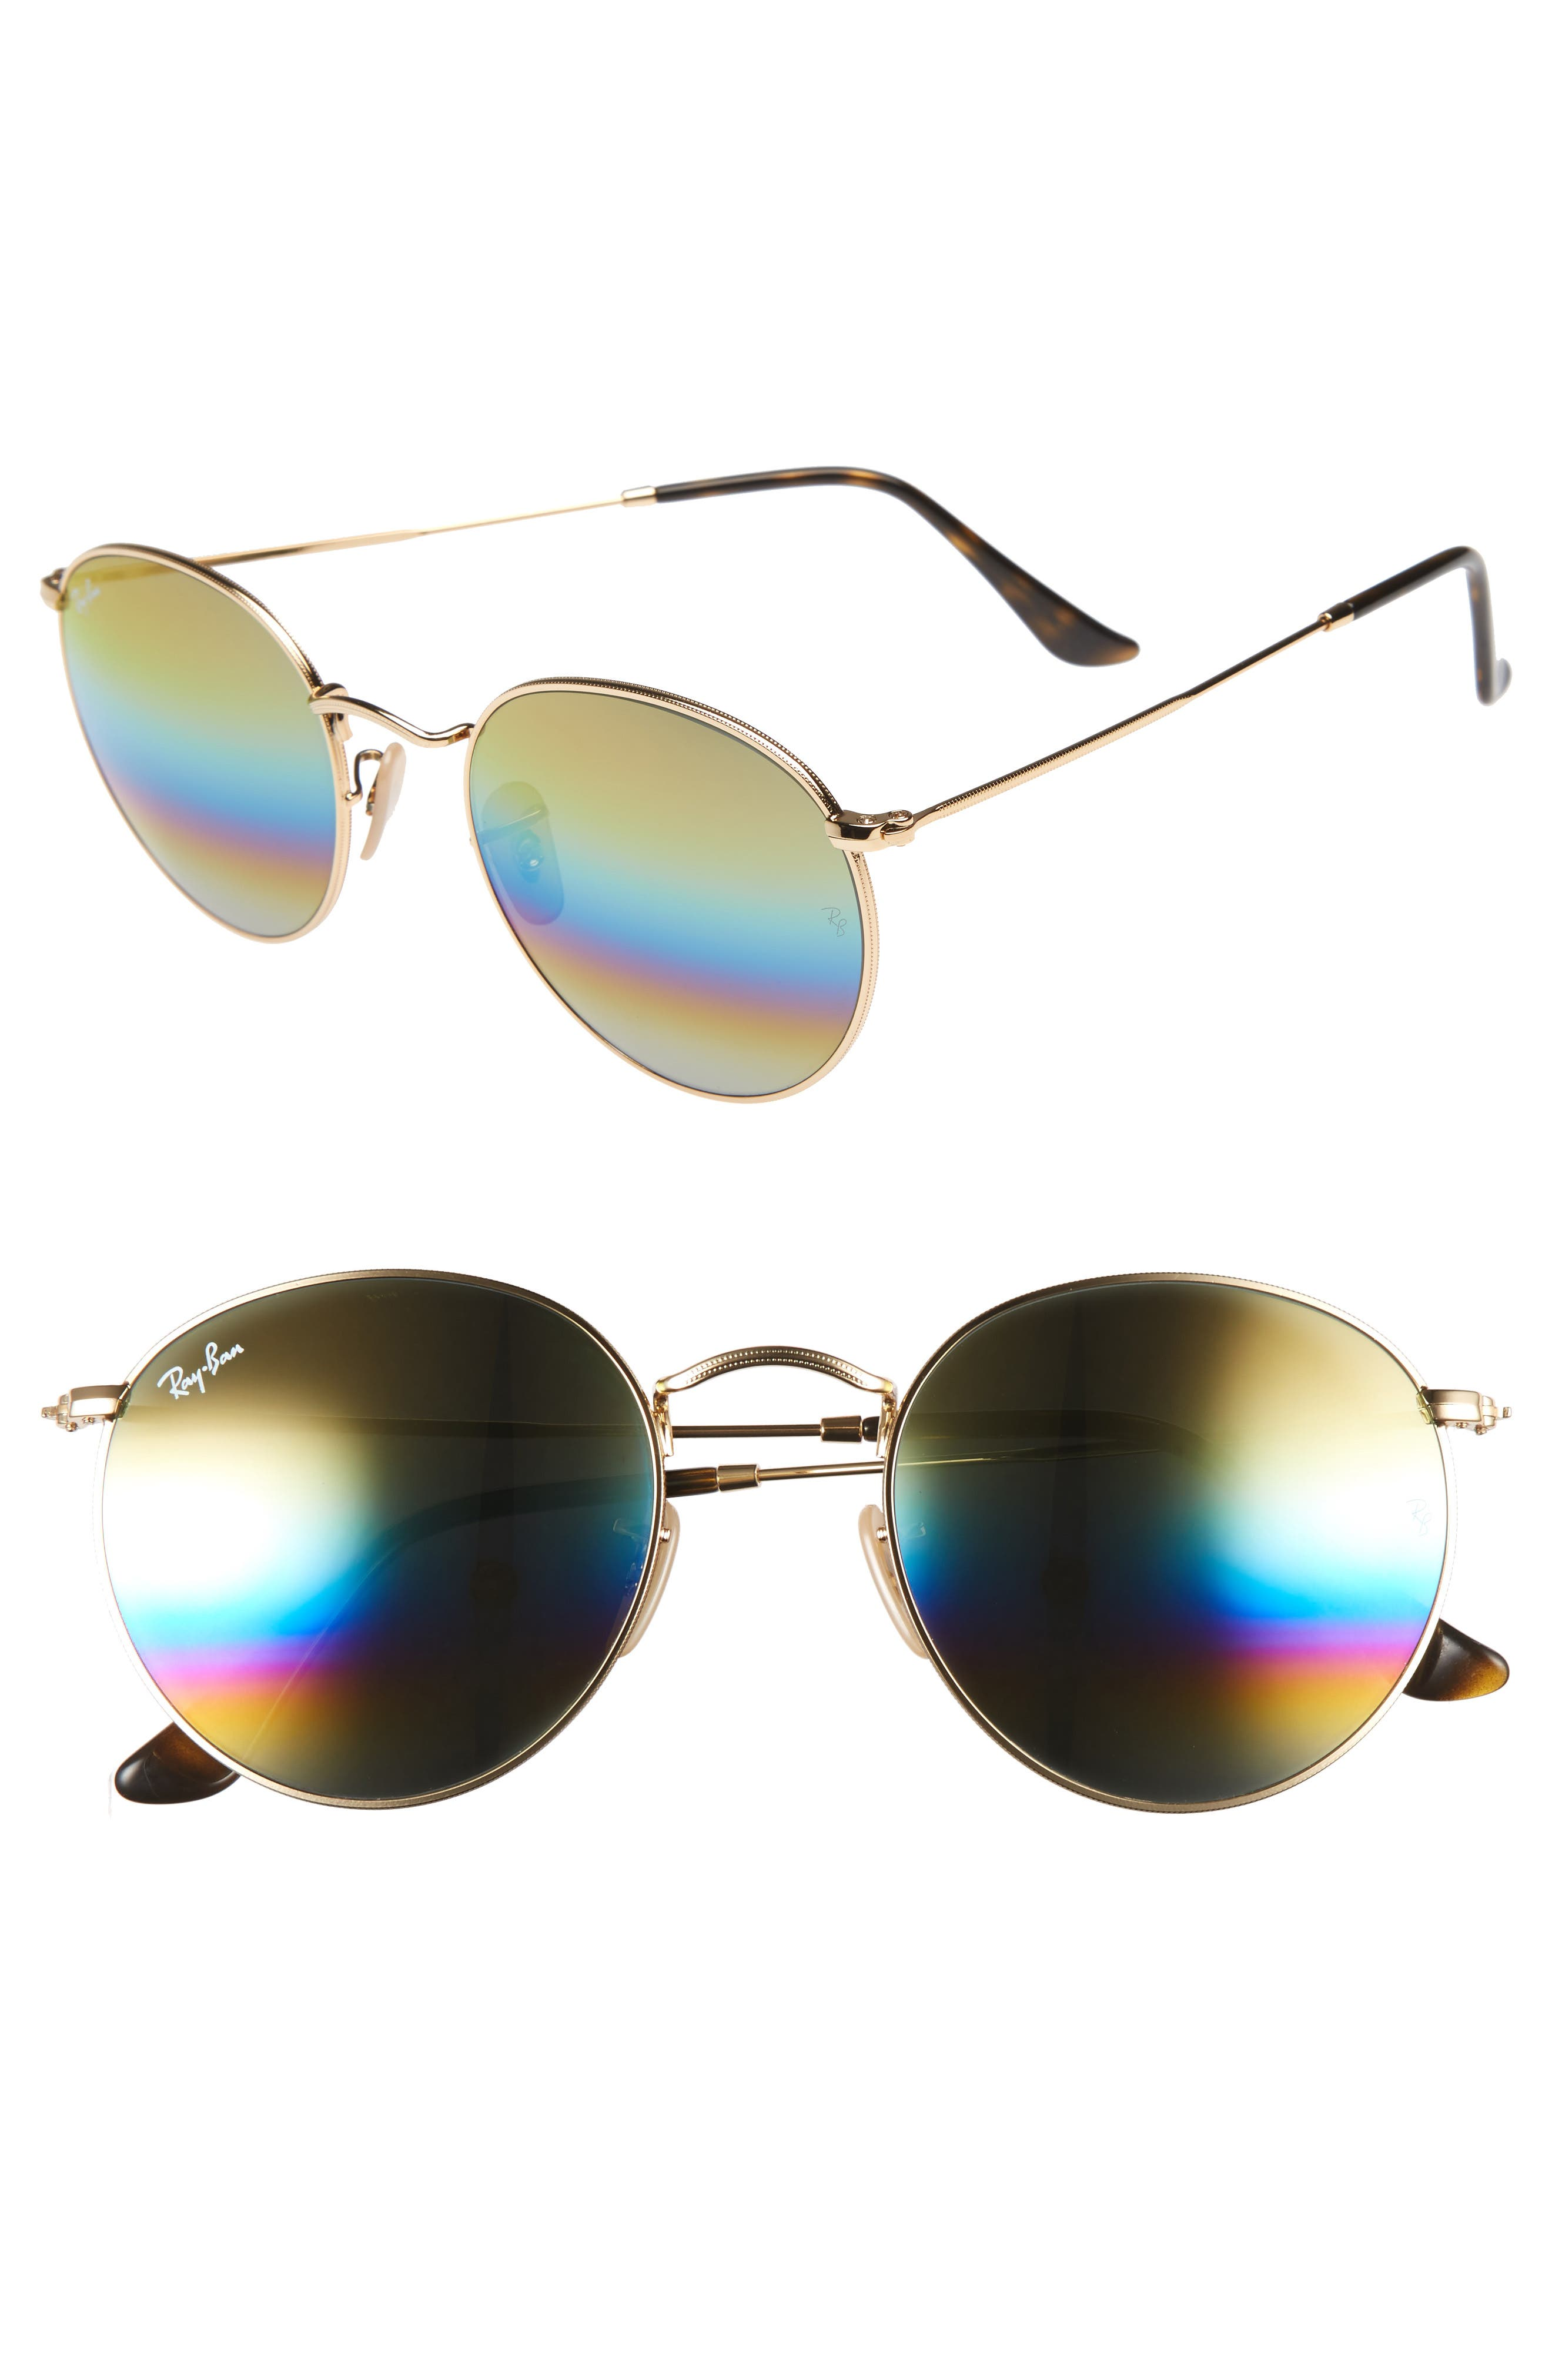 Ray-Ban 53mm Round Sunglasses (Nordstrom Exclusive)